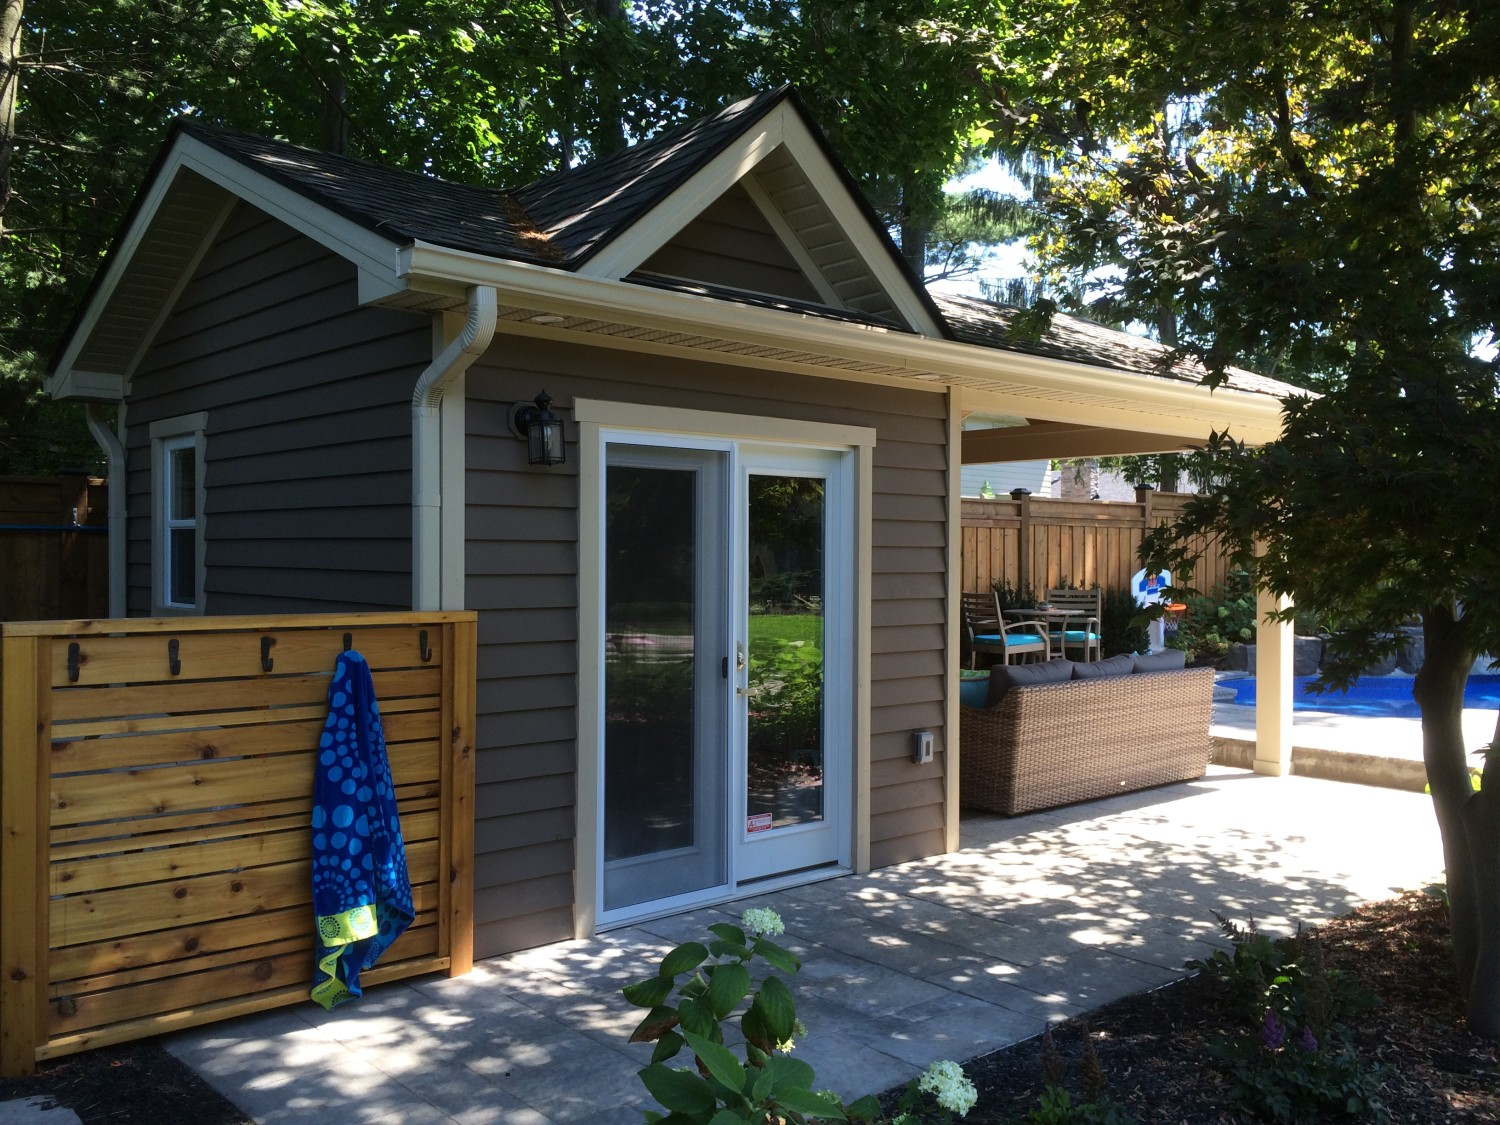 sheds cabana pool summerstyle building garden five toronto shed backyard corner sided house tag equipment